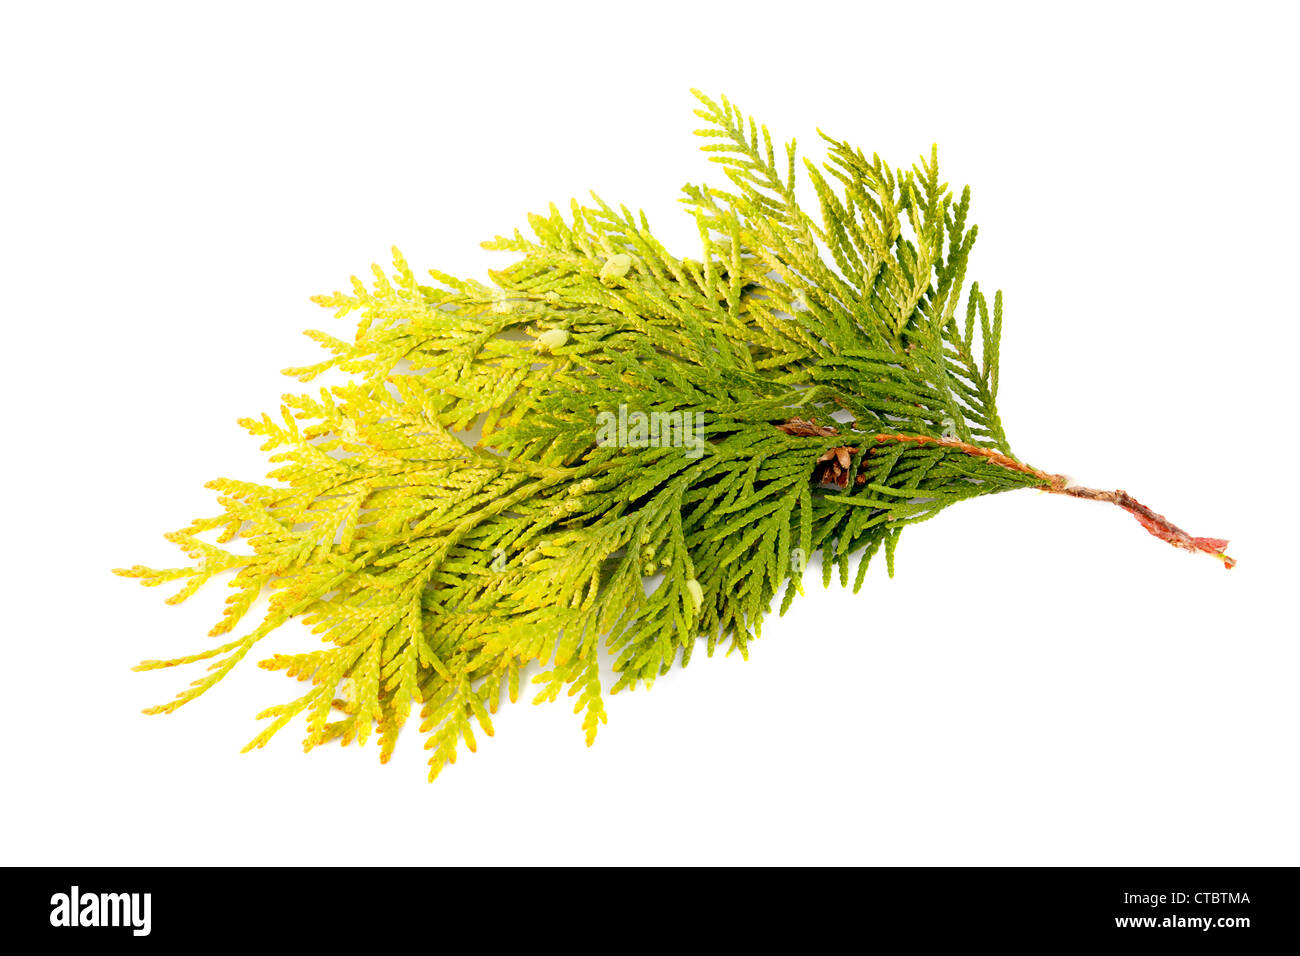 thuya branch on a white background - Stock Image